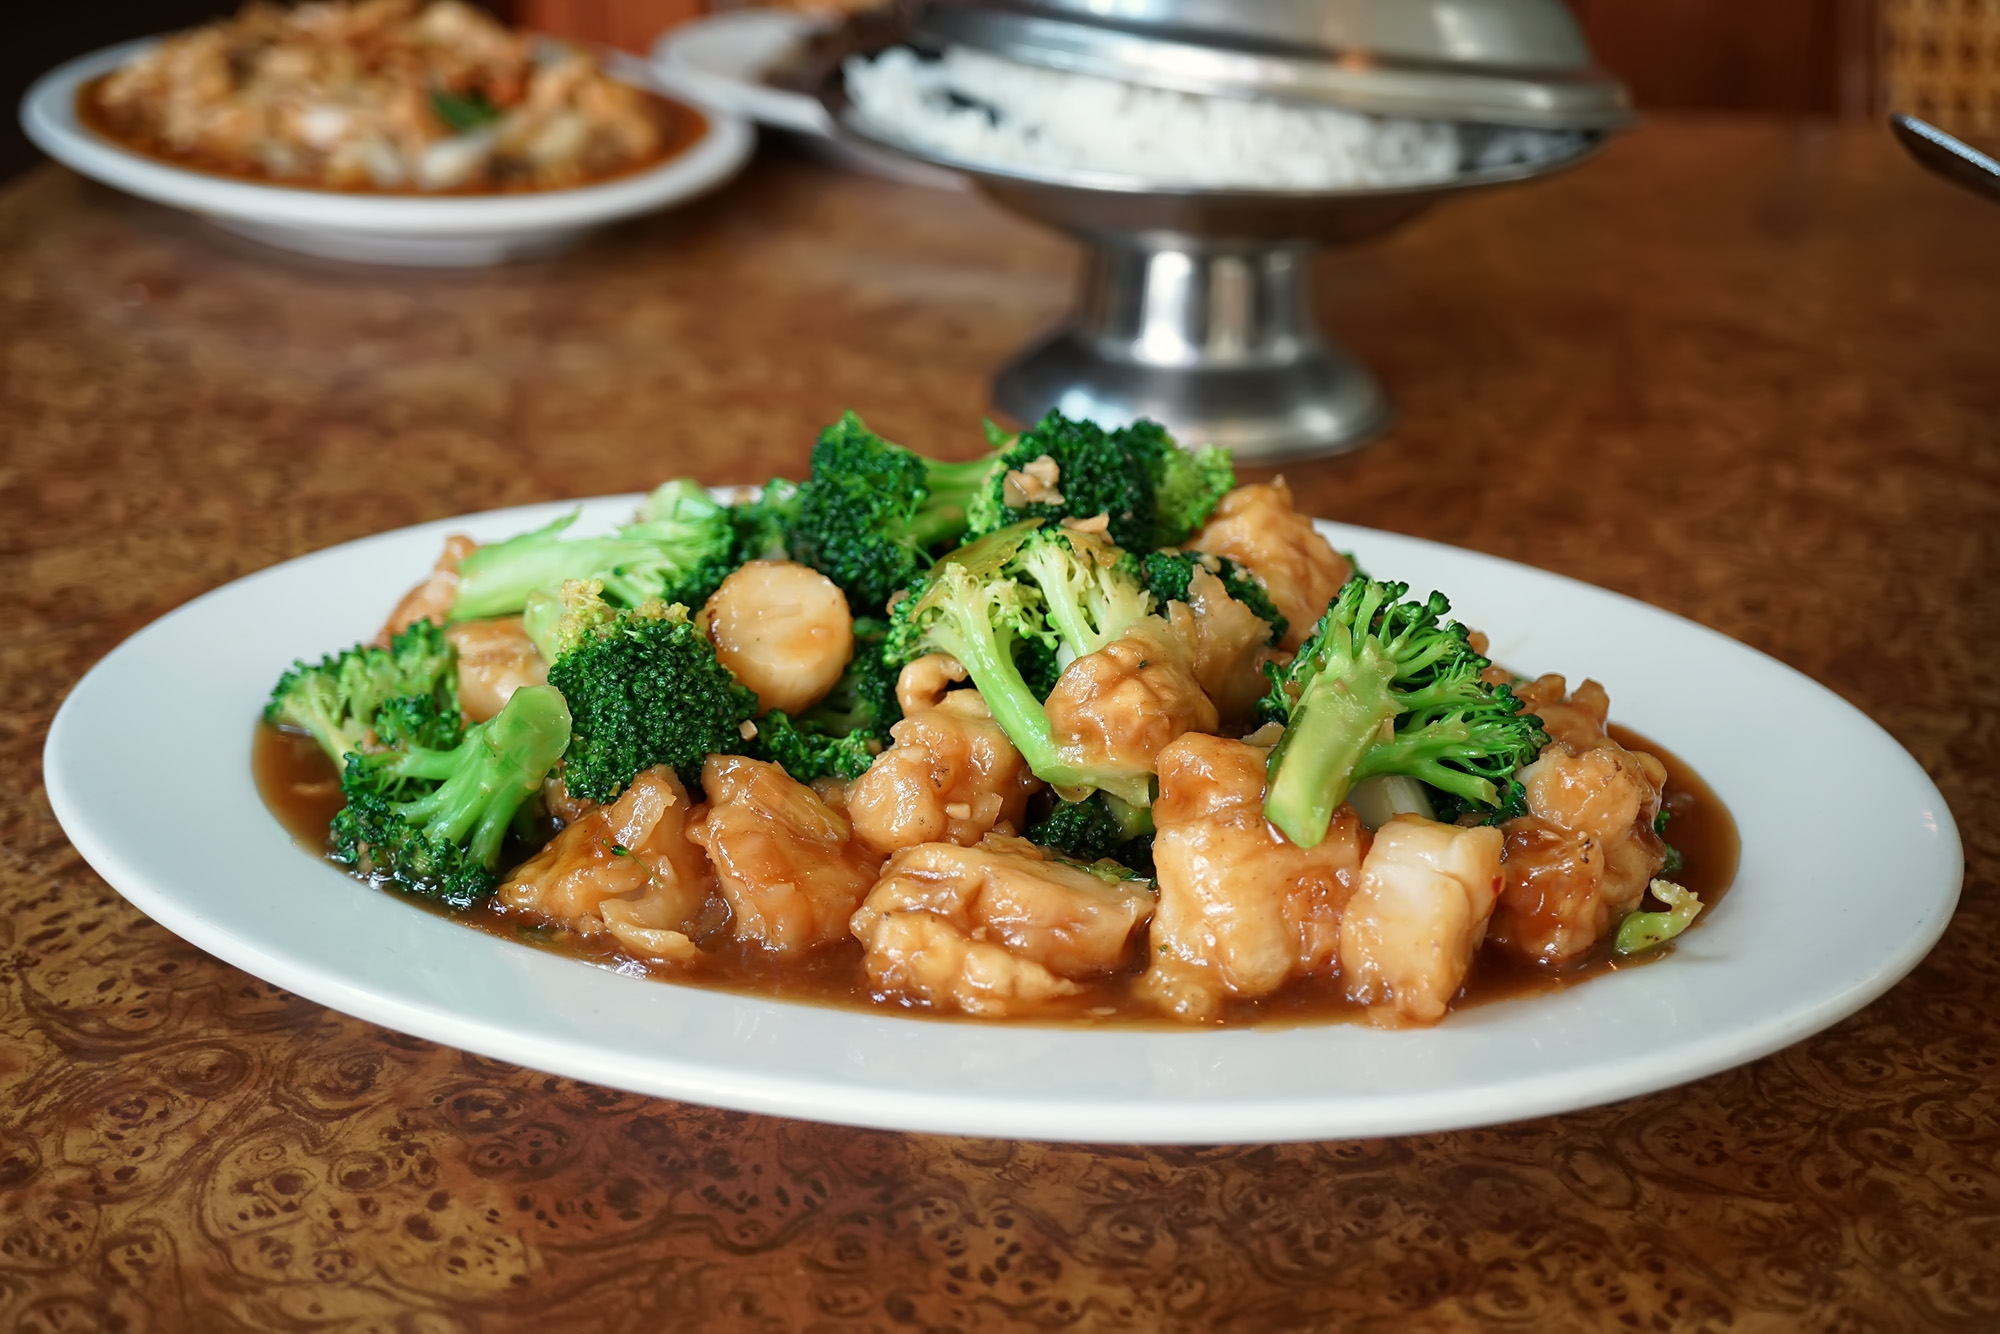 Scallops with Broccoli Image